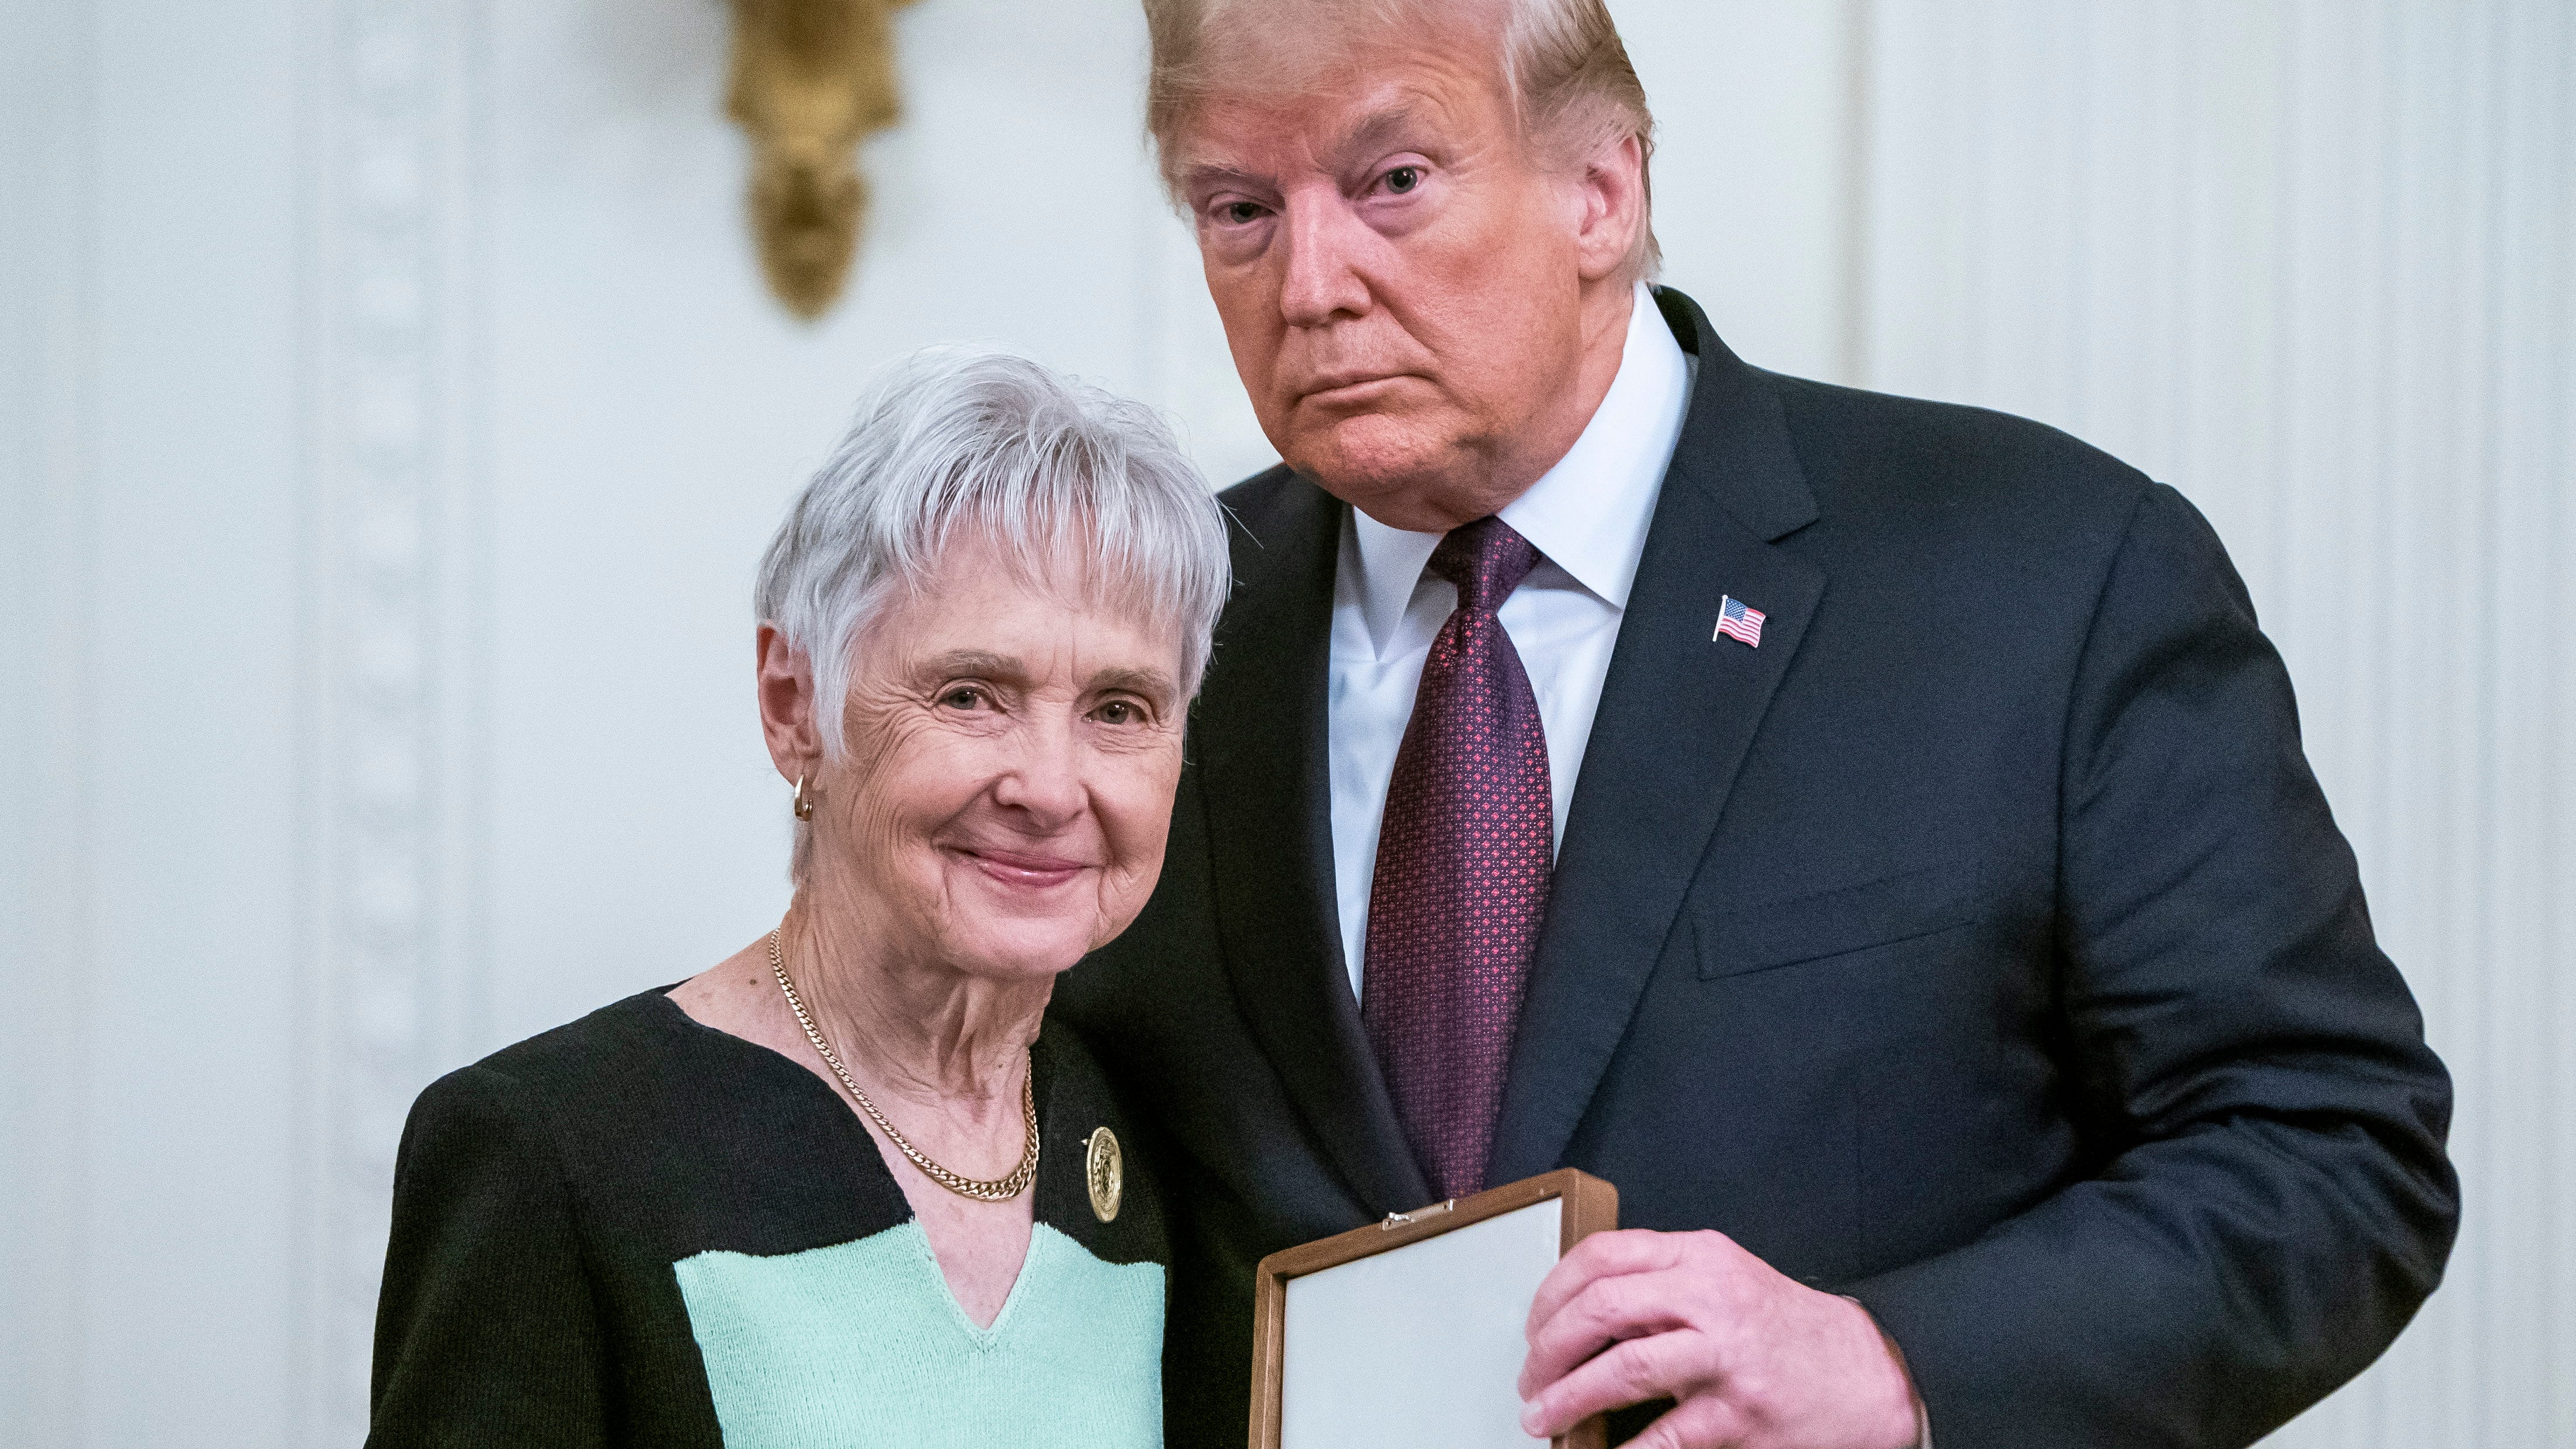 President Donald Trump is pictured awarding the Presidential Medal of Freedom to former Supreme Court Justice Antonin Scalia's widow Maureen Scalia at the White House.